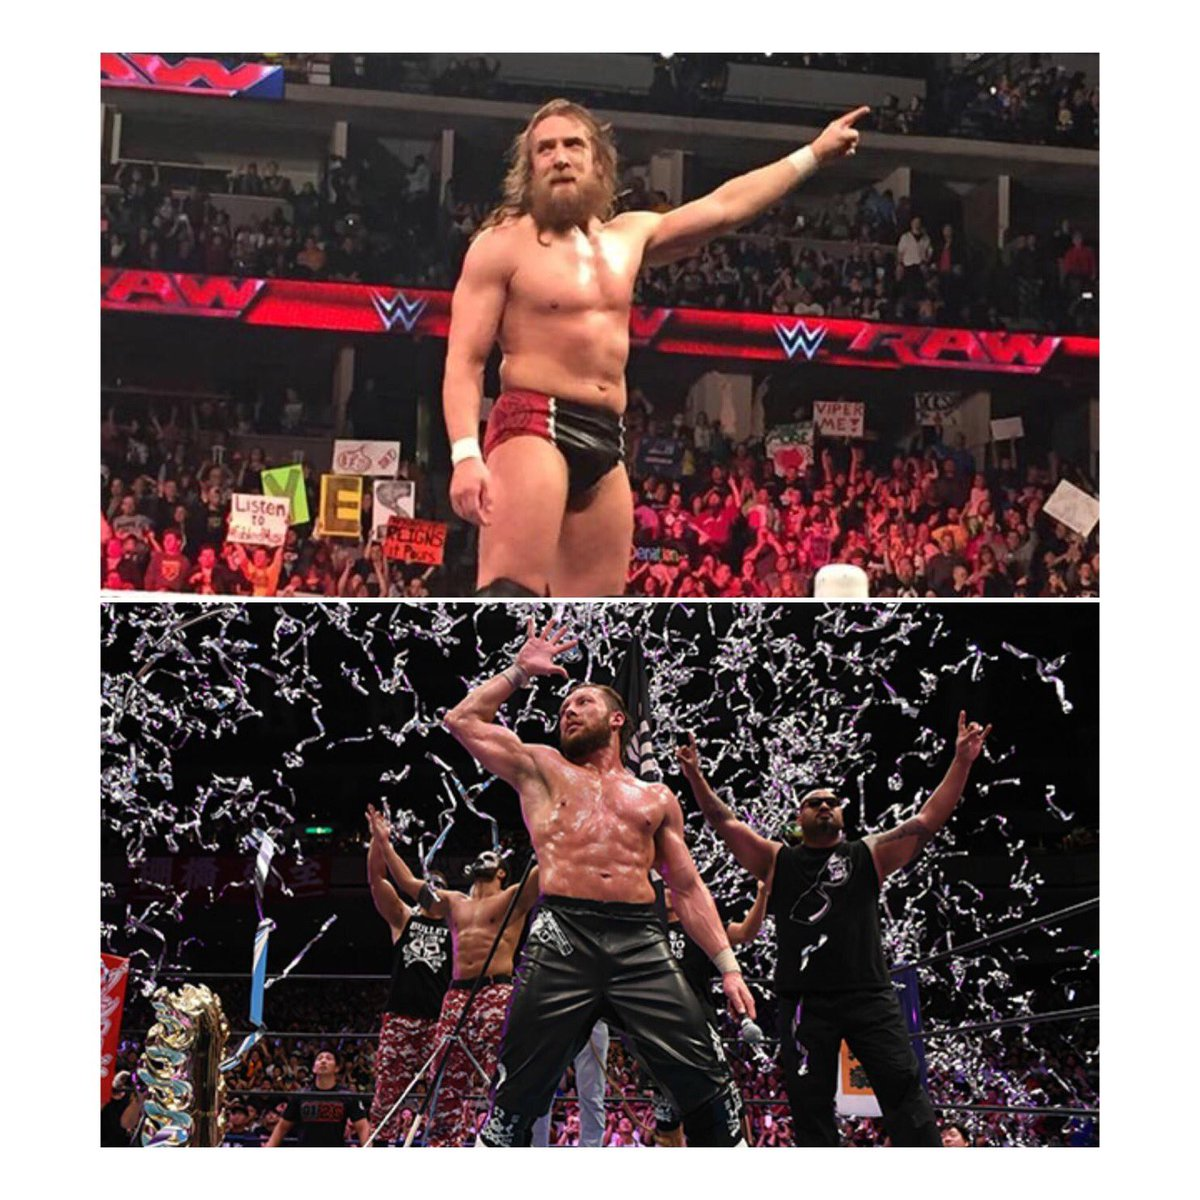 I hope to see this at a #WrestleKingdom one day @KennyOmegamanX @WWEDanielBryan #NJPW #WWE<br>http://pic.twitter.com/CDJtHeEgFR